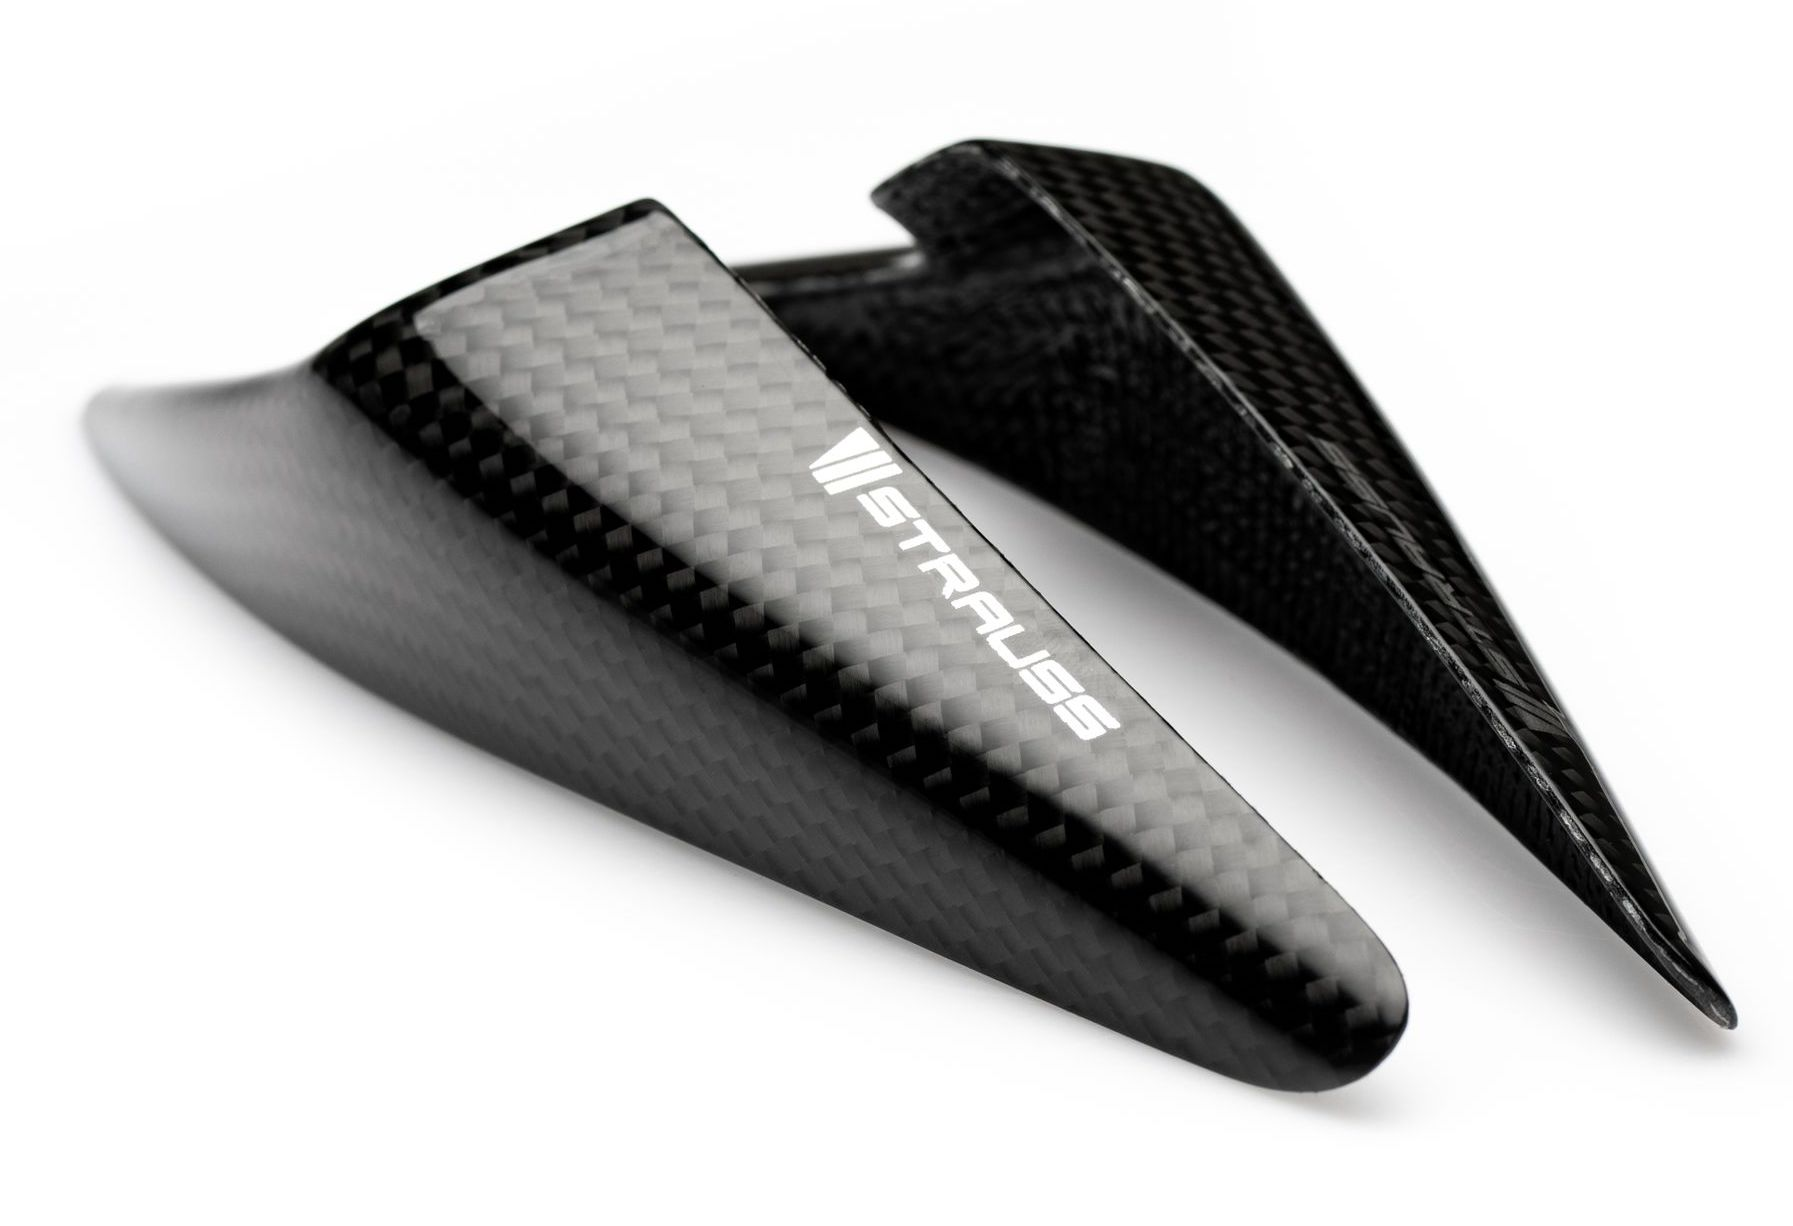 Strauss Yamaha R3 R25 Carbon Fibre Tail Sliders 2015-18